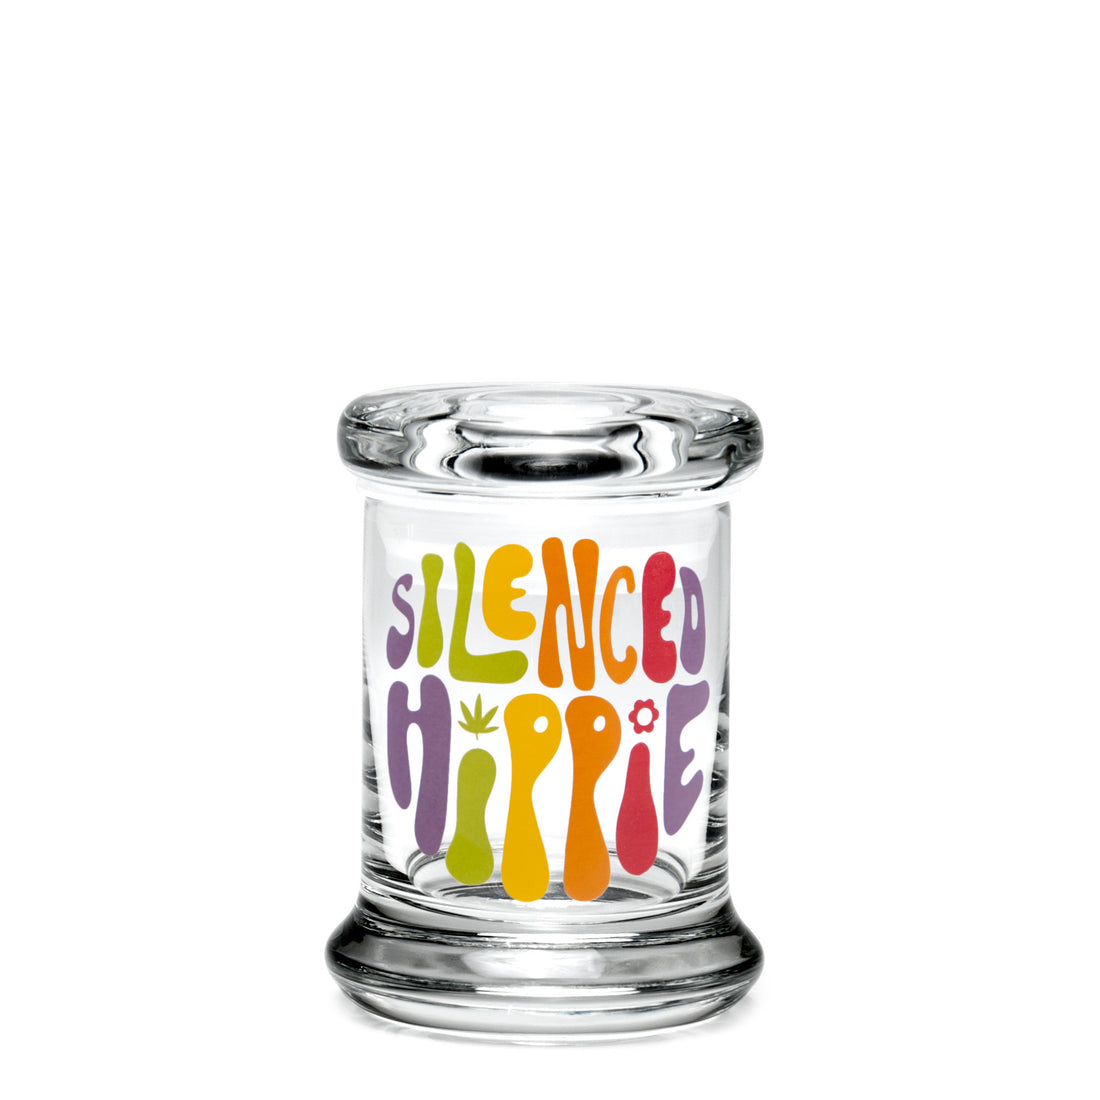 X-Small Pop-Top - Silenced Hippie - 420 Science - The most trusted online smoke shop.